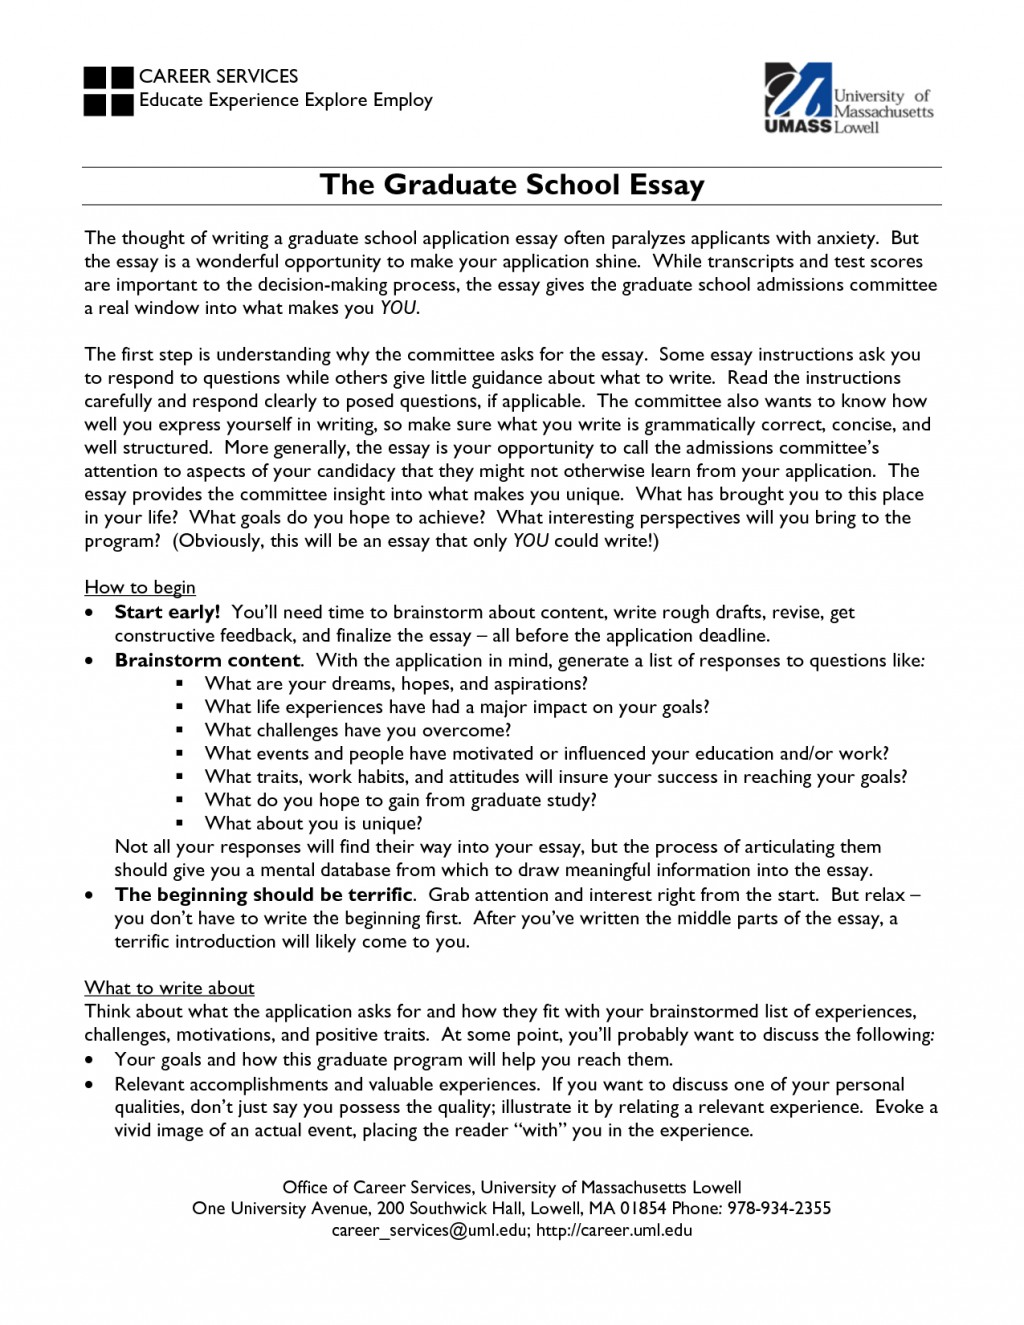 Write a Graduate School Essay that Will Knock Their Socks Off